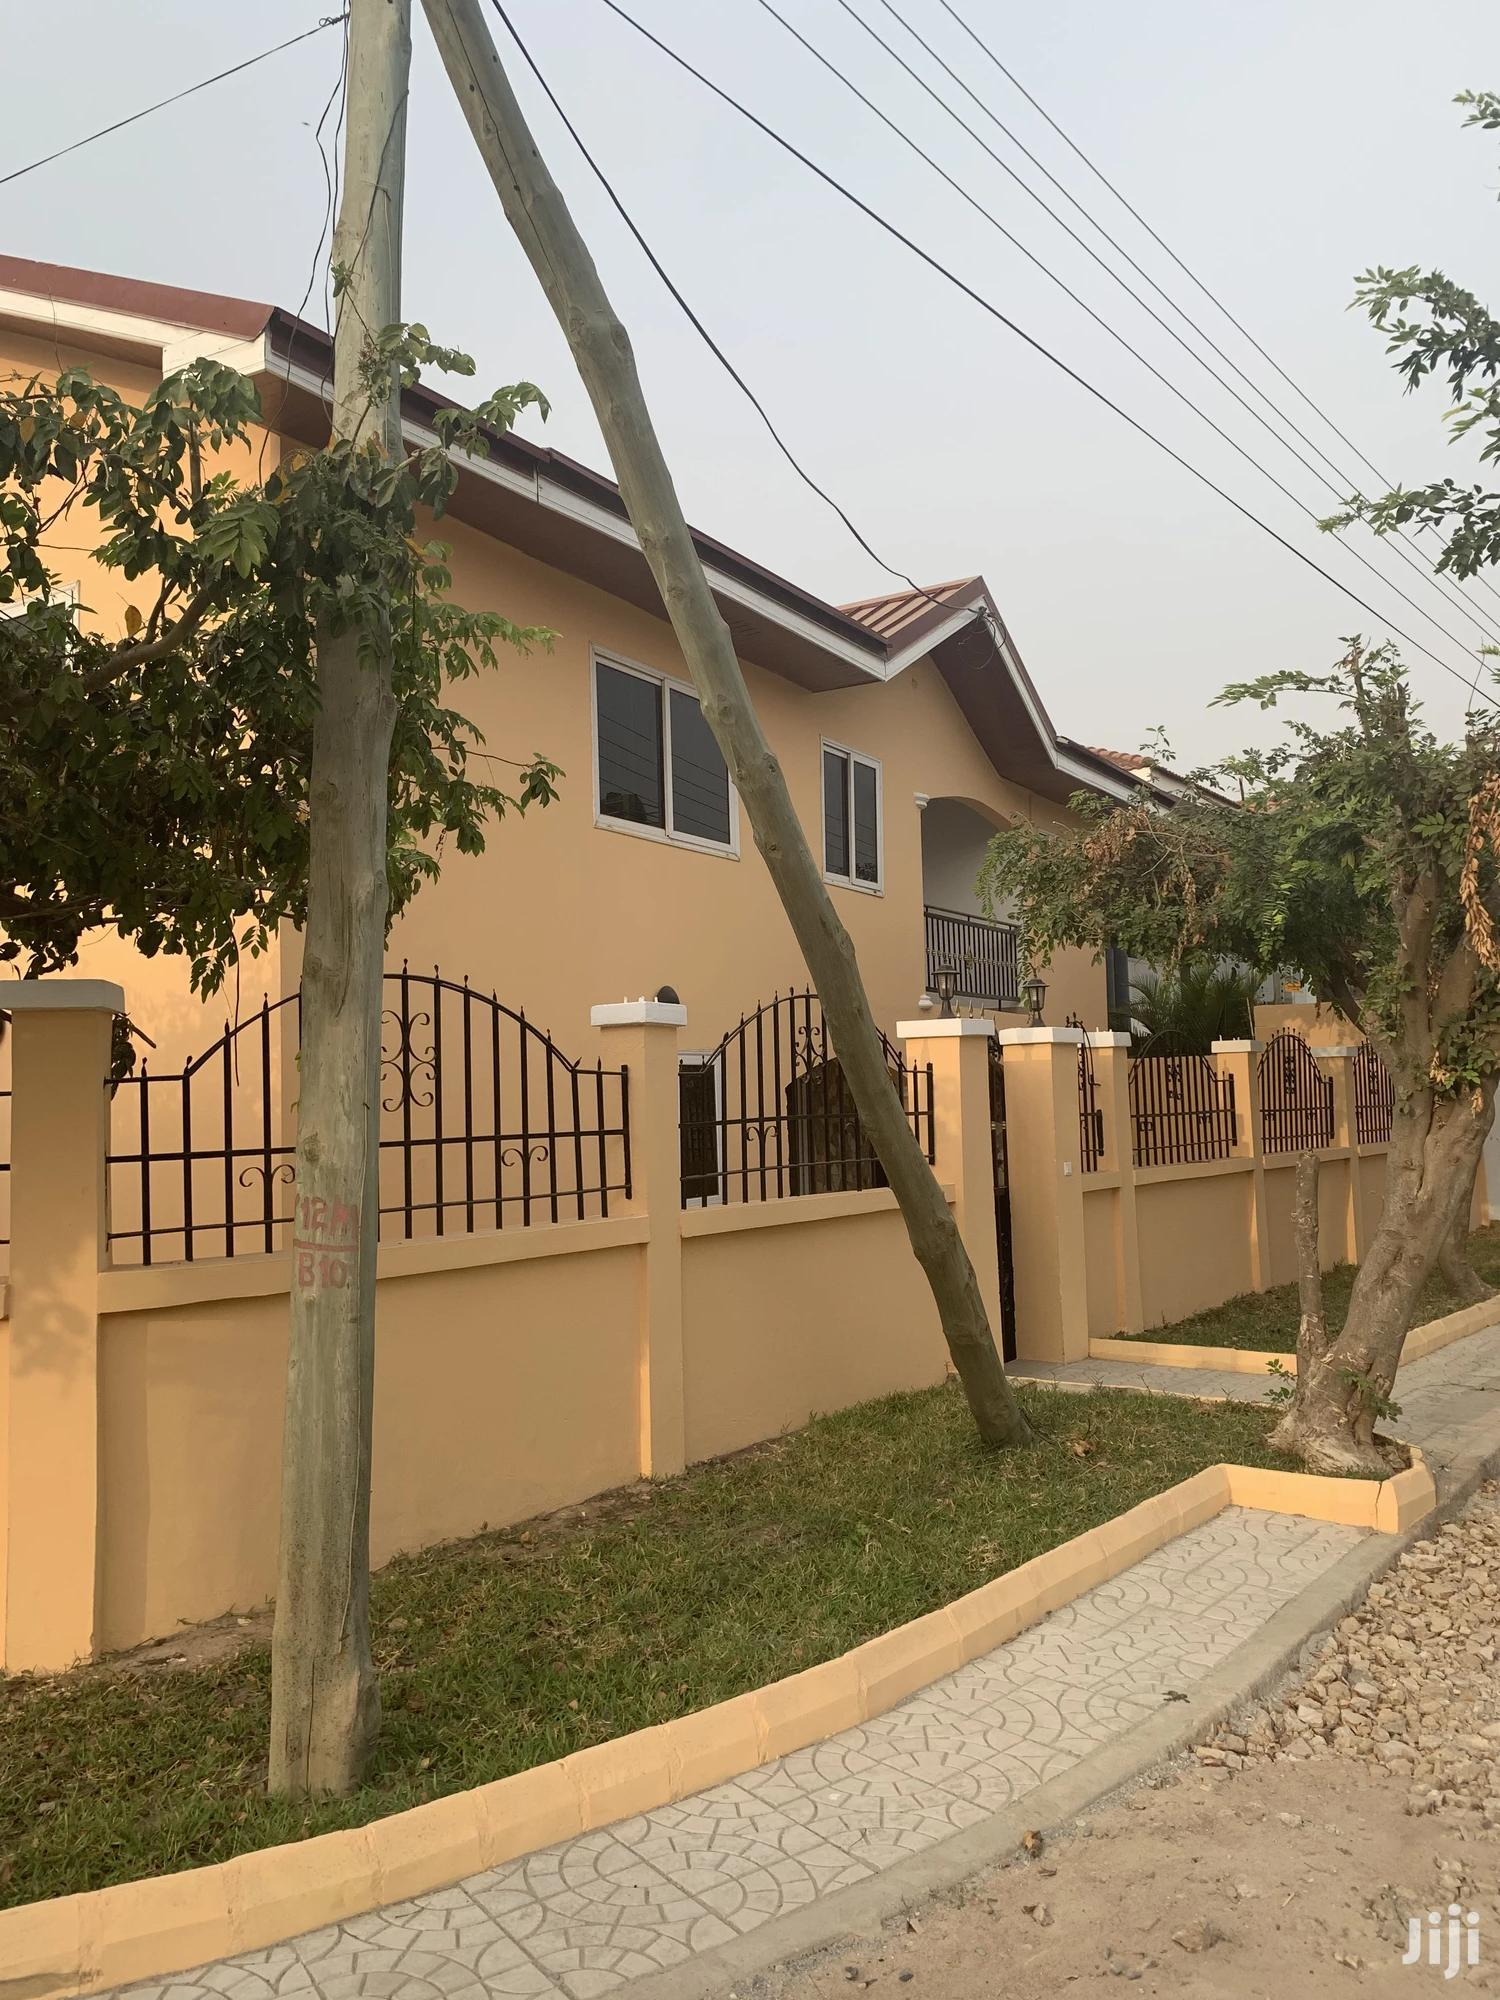 Executive 3-bedroom House At East Legon, Accra